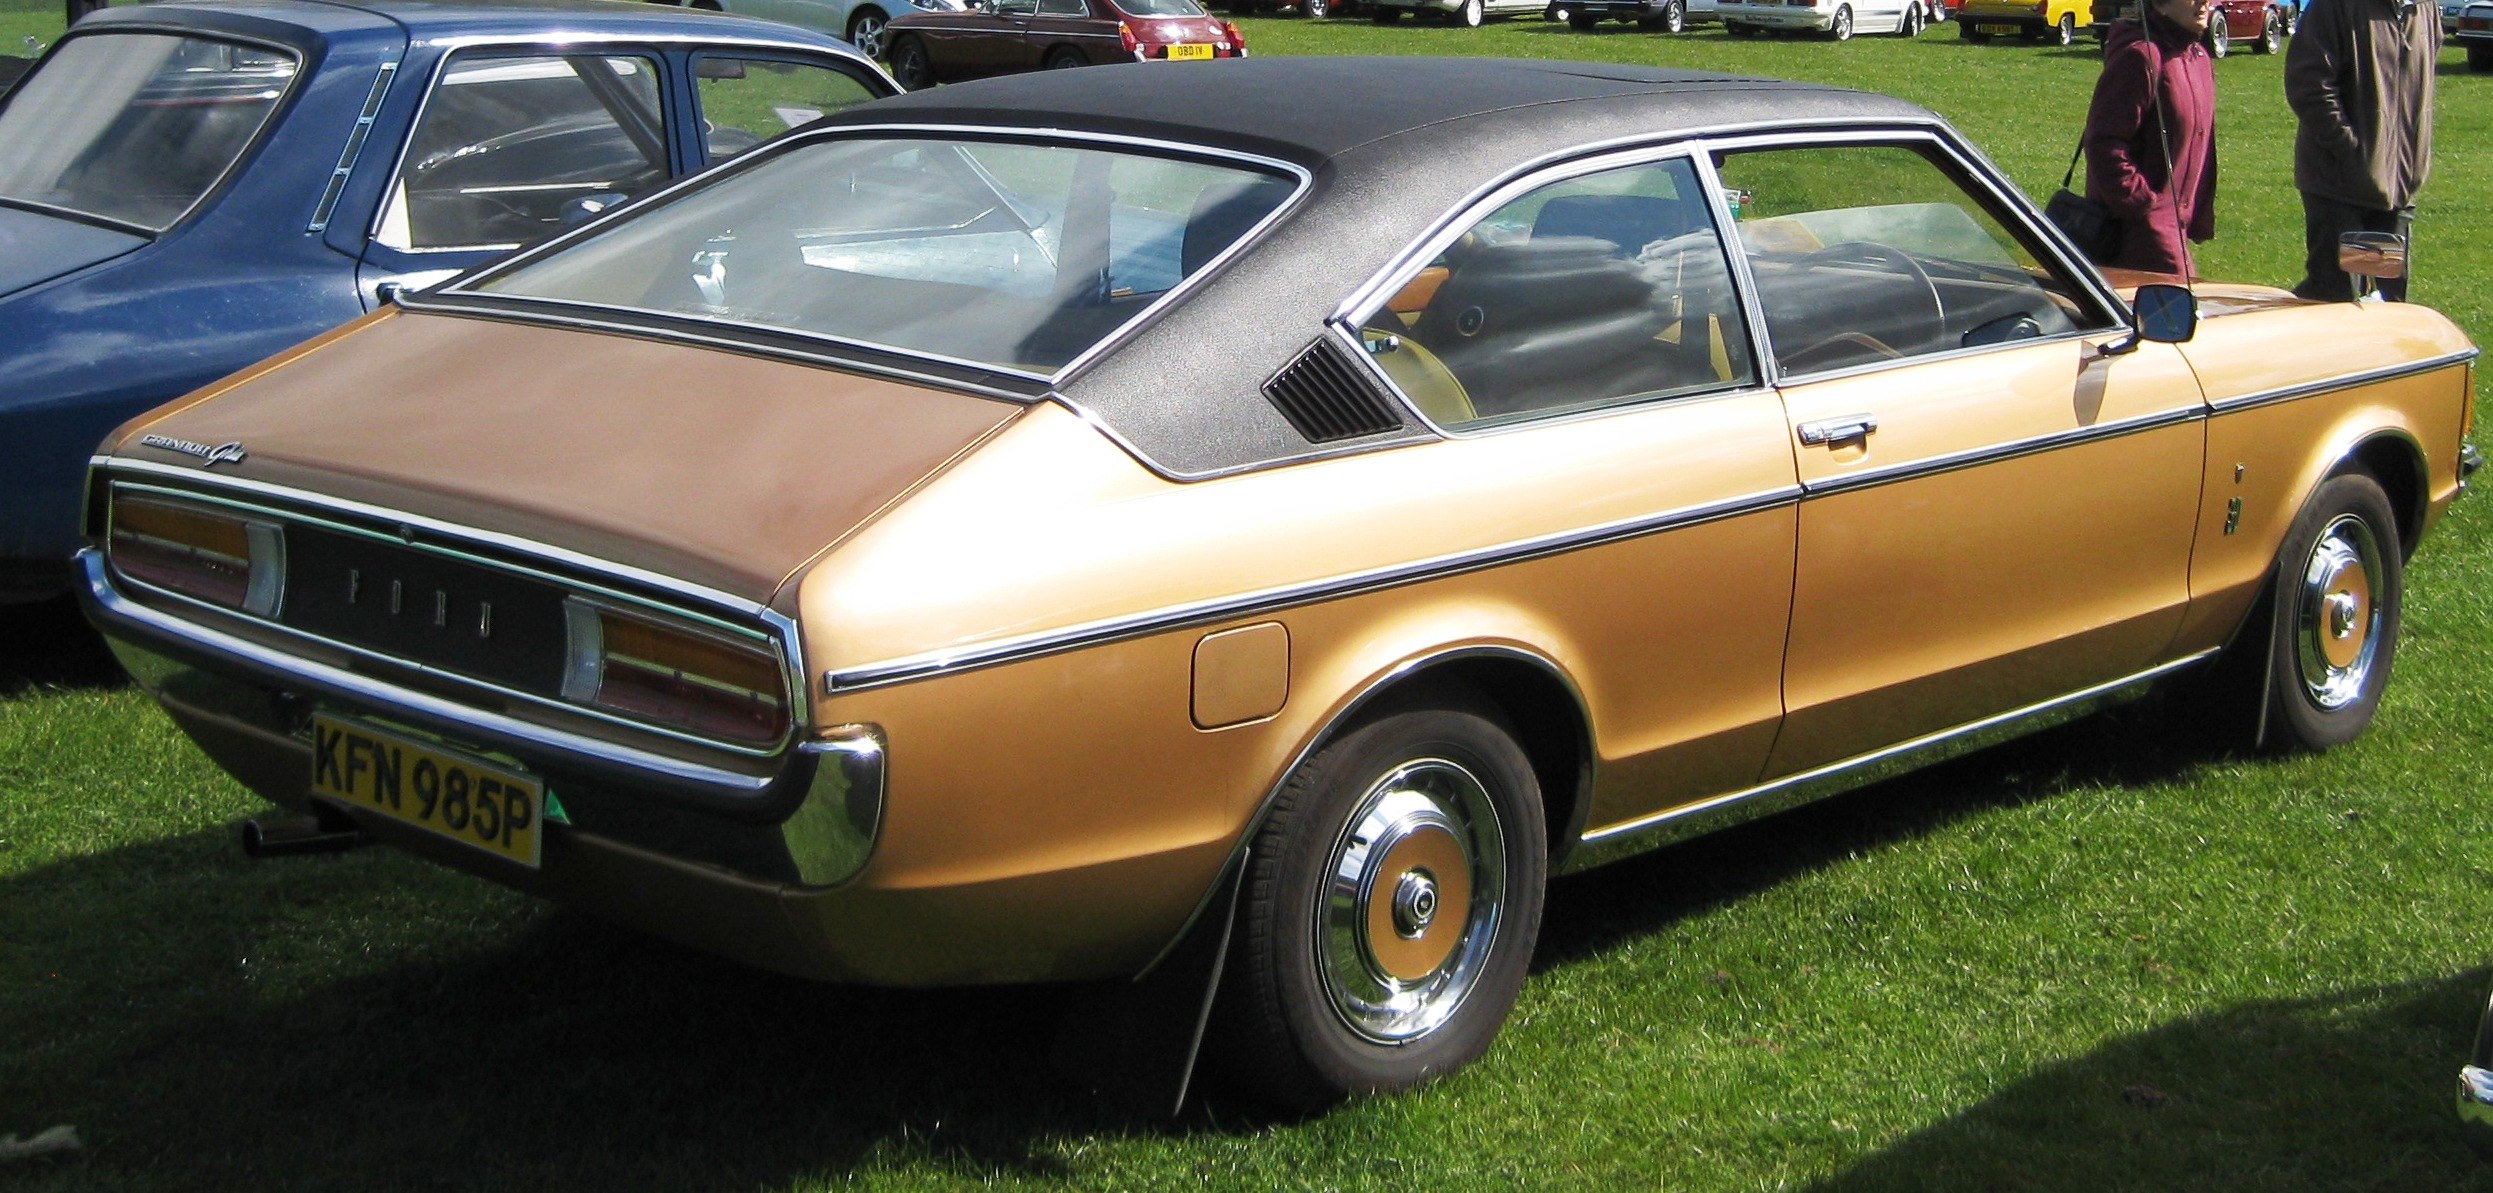 File:Ford Granada Coupe second shape Jan 76 reg 3000 cc ...